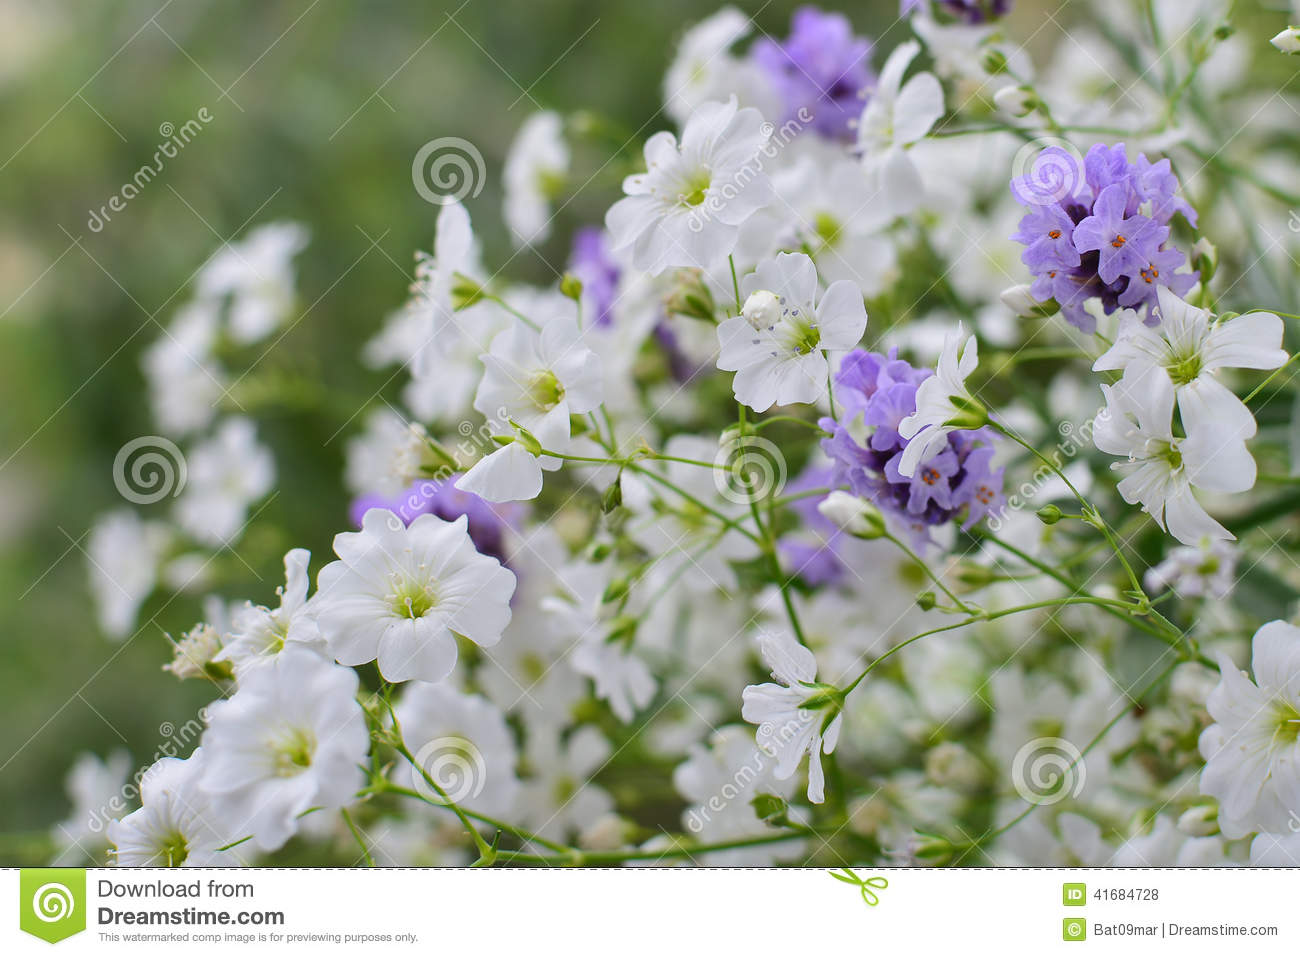 Baby s Breath Flowers And Lavender Stock Image